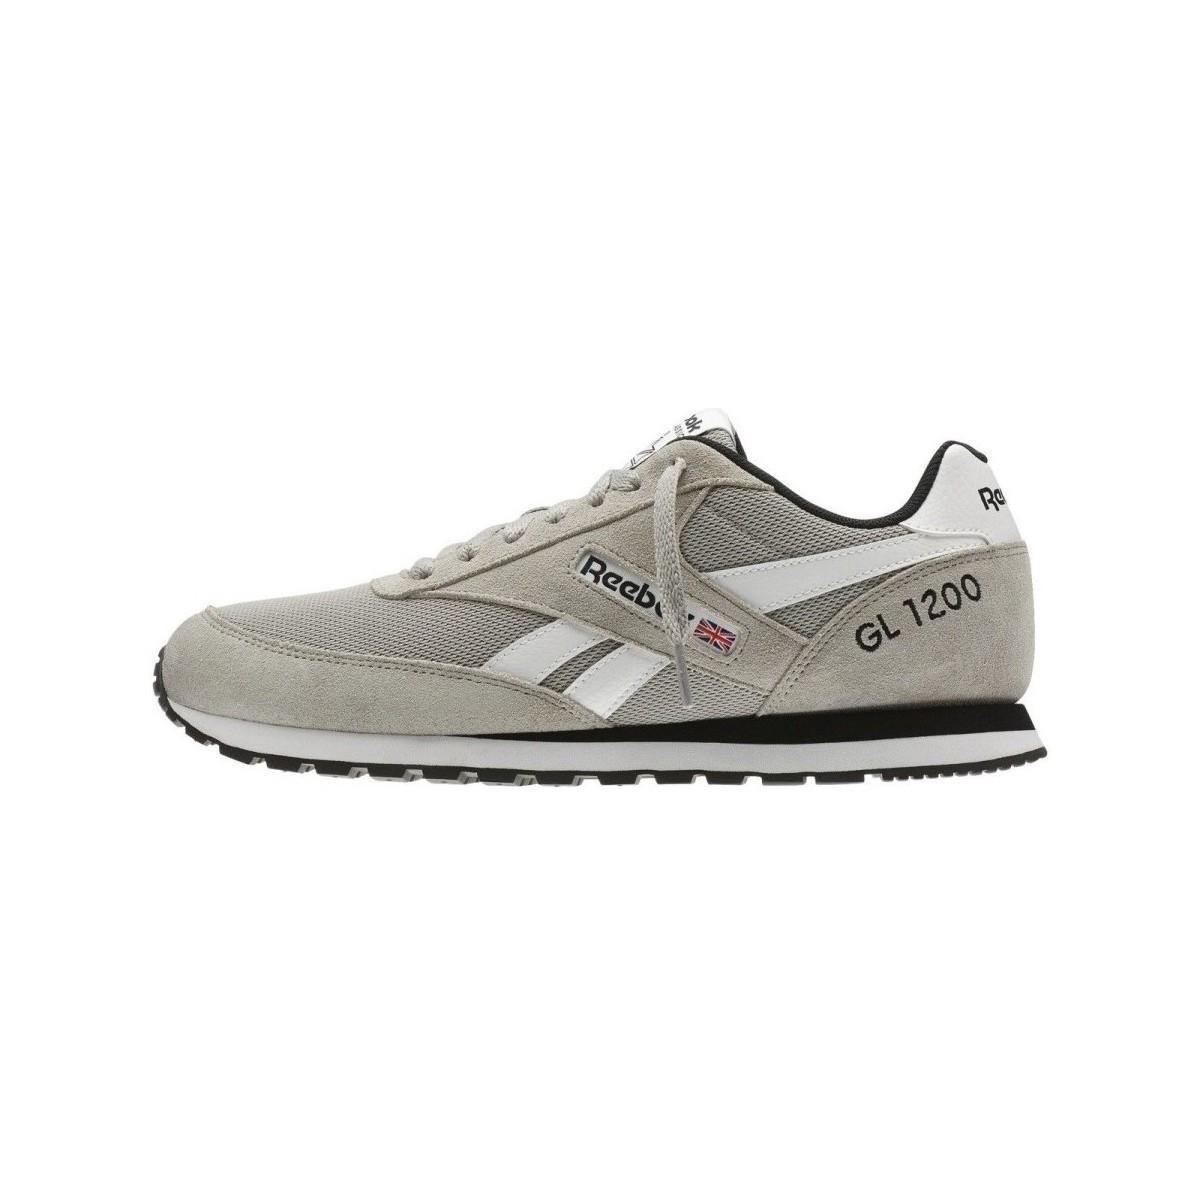 f58ade45e1ad Reebok Gl 1200 Men S Shoes Trainers In Grey Black For Lyst